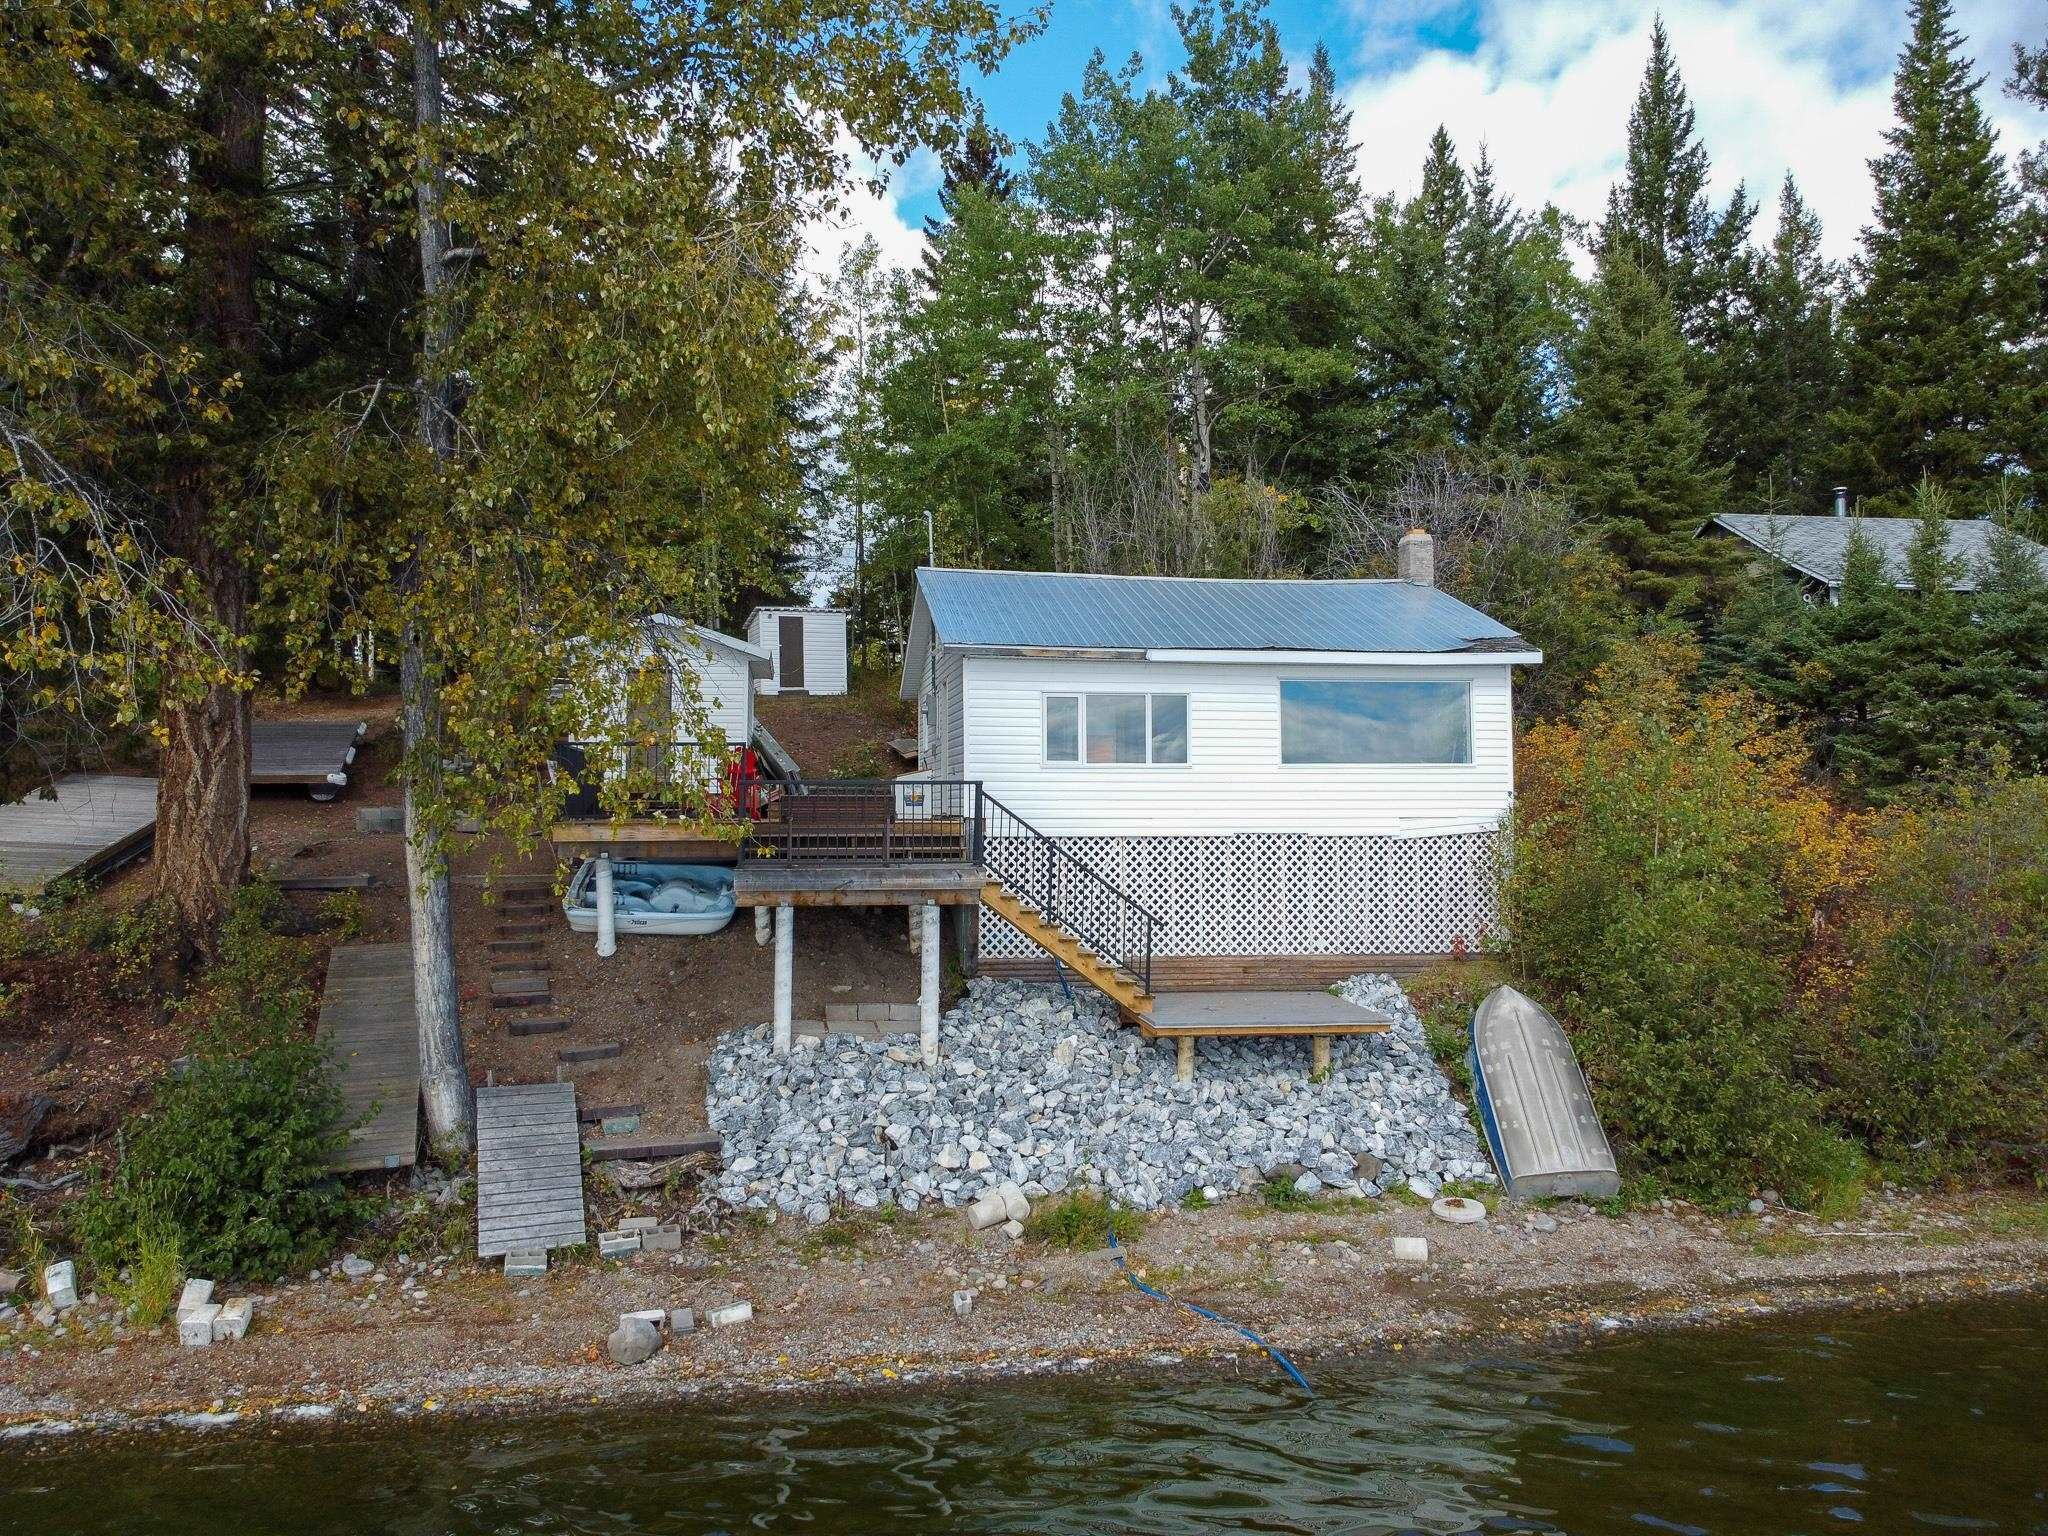 """Main Photo: 4580 E MEIER Road in Prince George: Cluculz Lake House for sale in """"CLUCULZ LAKE"""" (PG Rural West (Zone 77))  : MLS®# R2619628"""